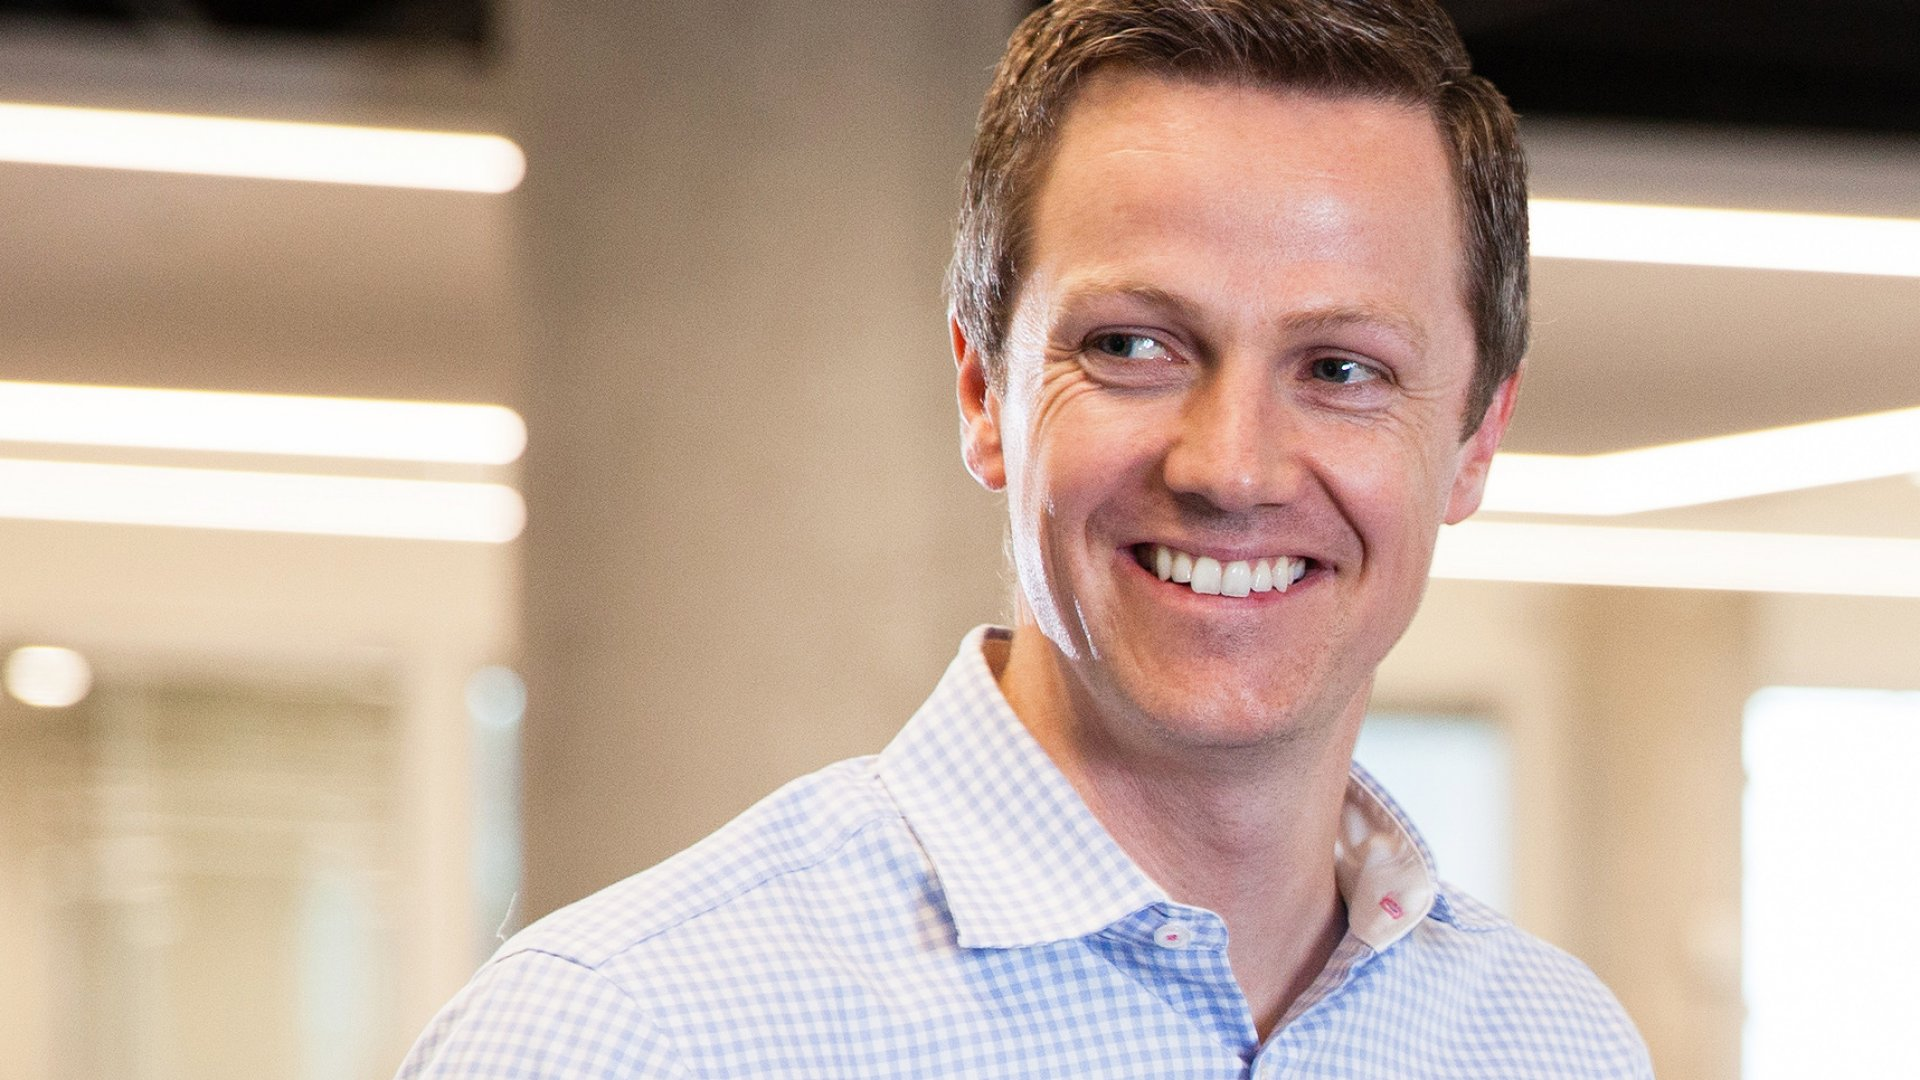 SoFi co-founder and VP of community and member success Dan Macklin set out to create a refinancing service that is on the same team as its customers.